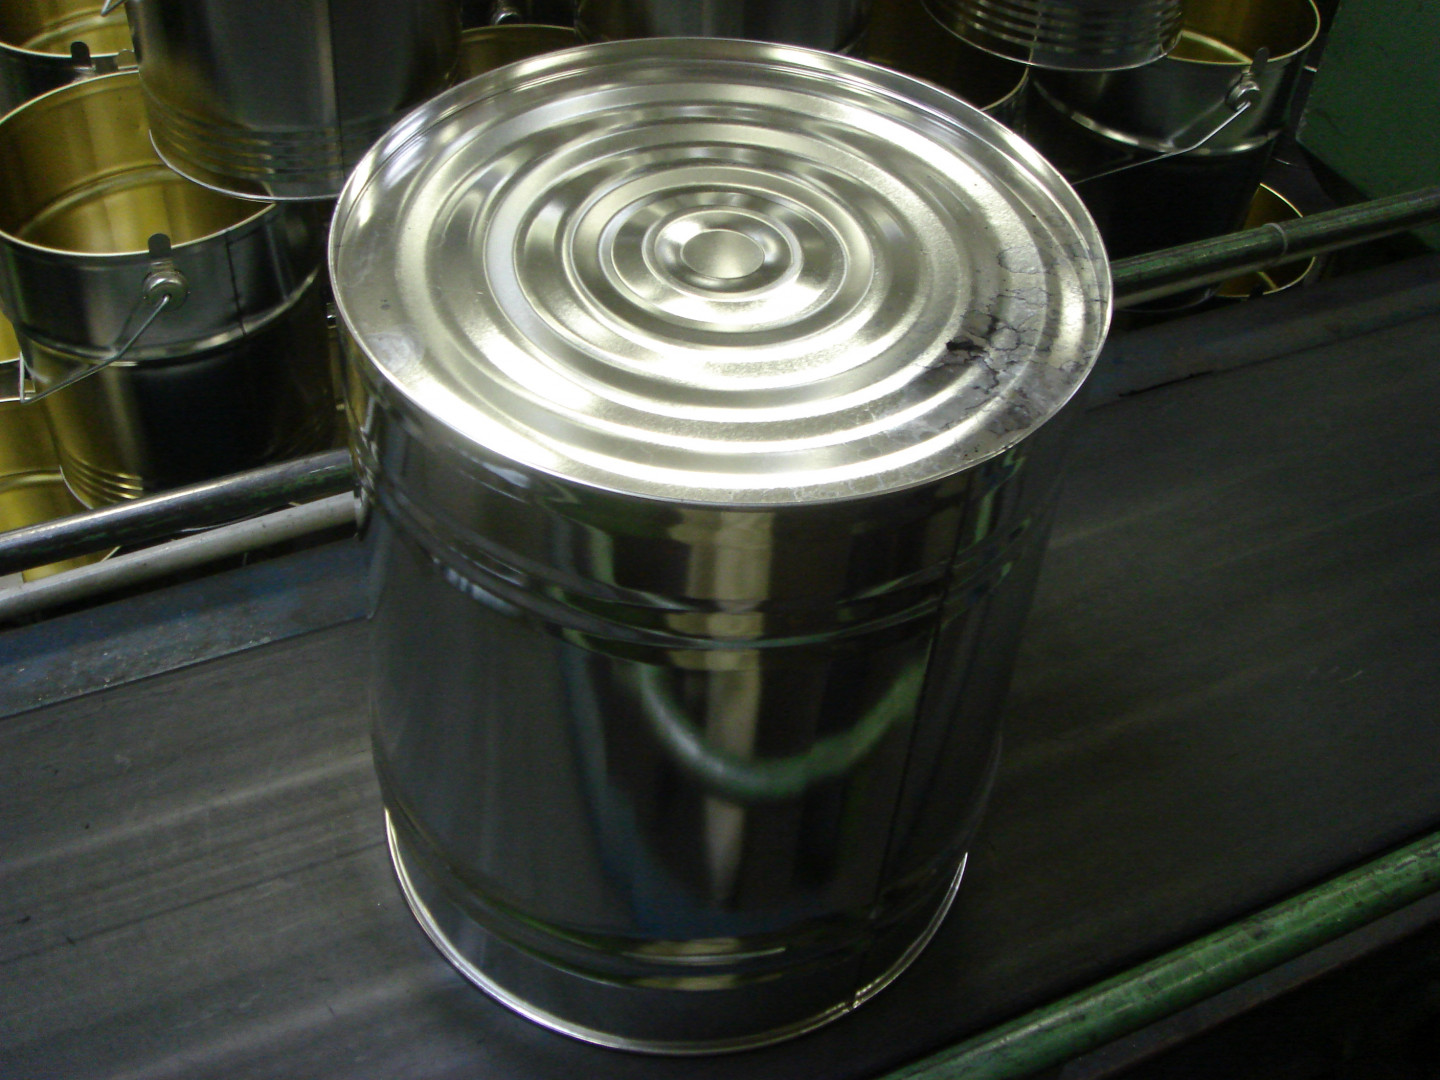 expanded can body